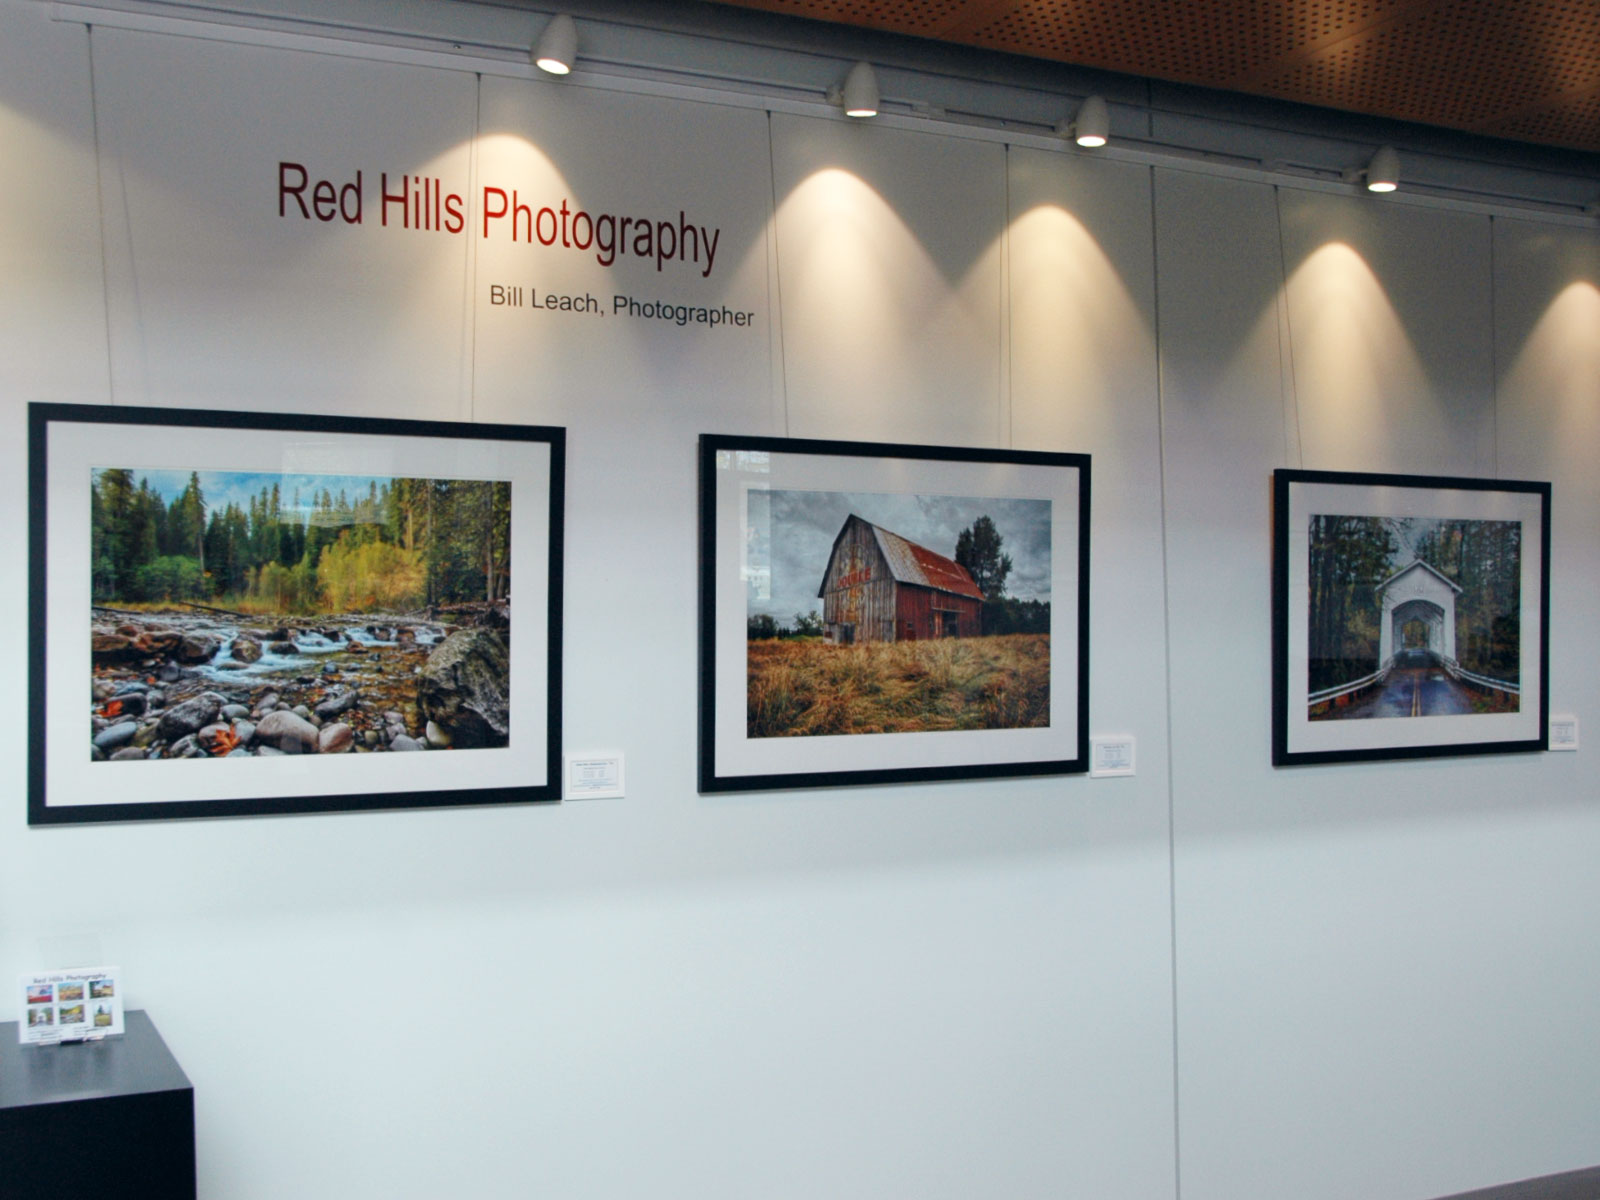 A set of photos from Red Hills Photography in the commons gallery of the Wilsonville campus